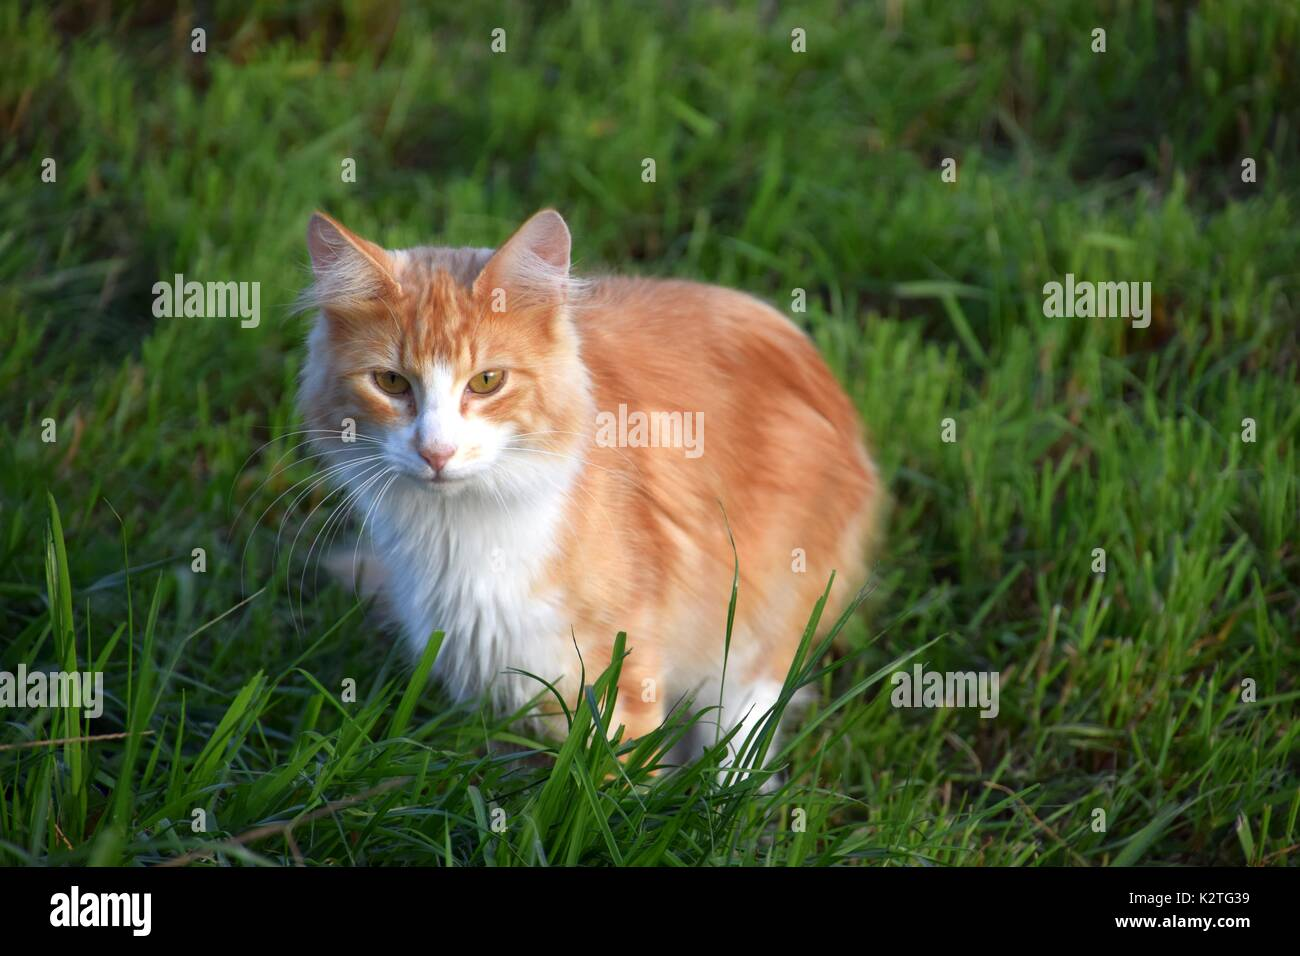 Long-haired tortoiseshell cat, orange and White Torties, Particolored Cat, Felis Catus, Felis Silvestris catus Stock Photo